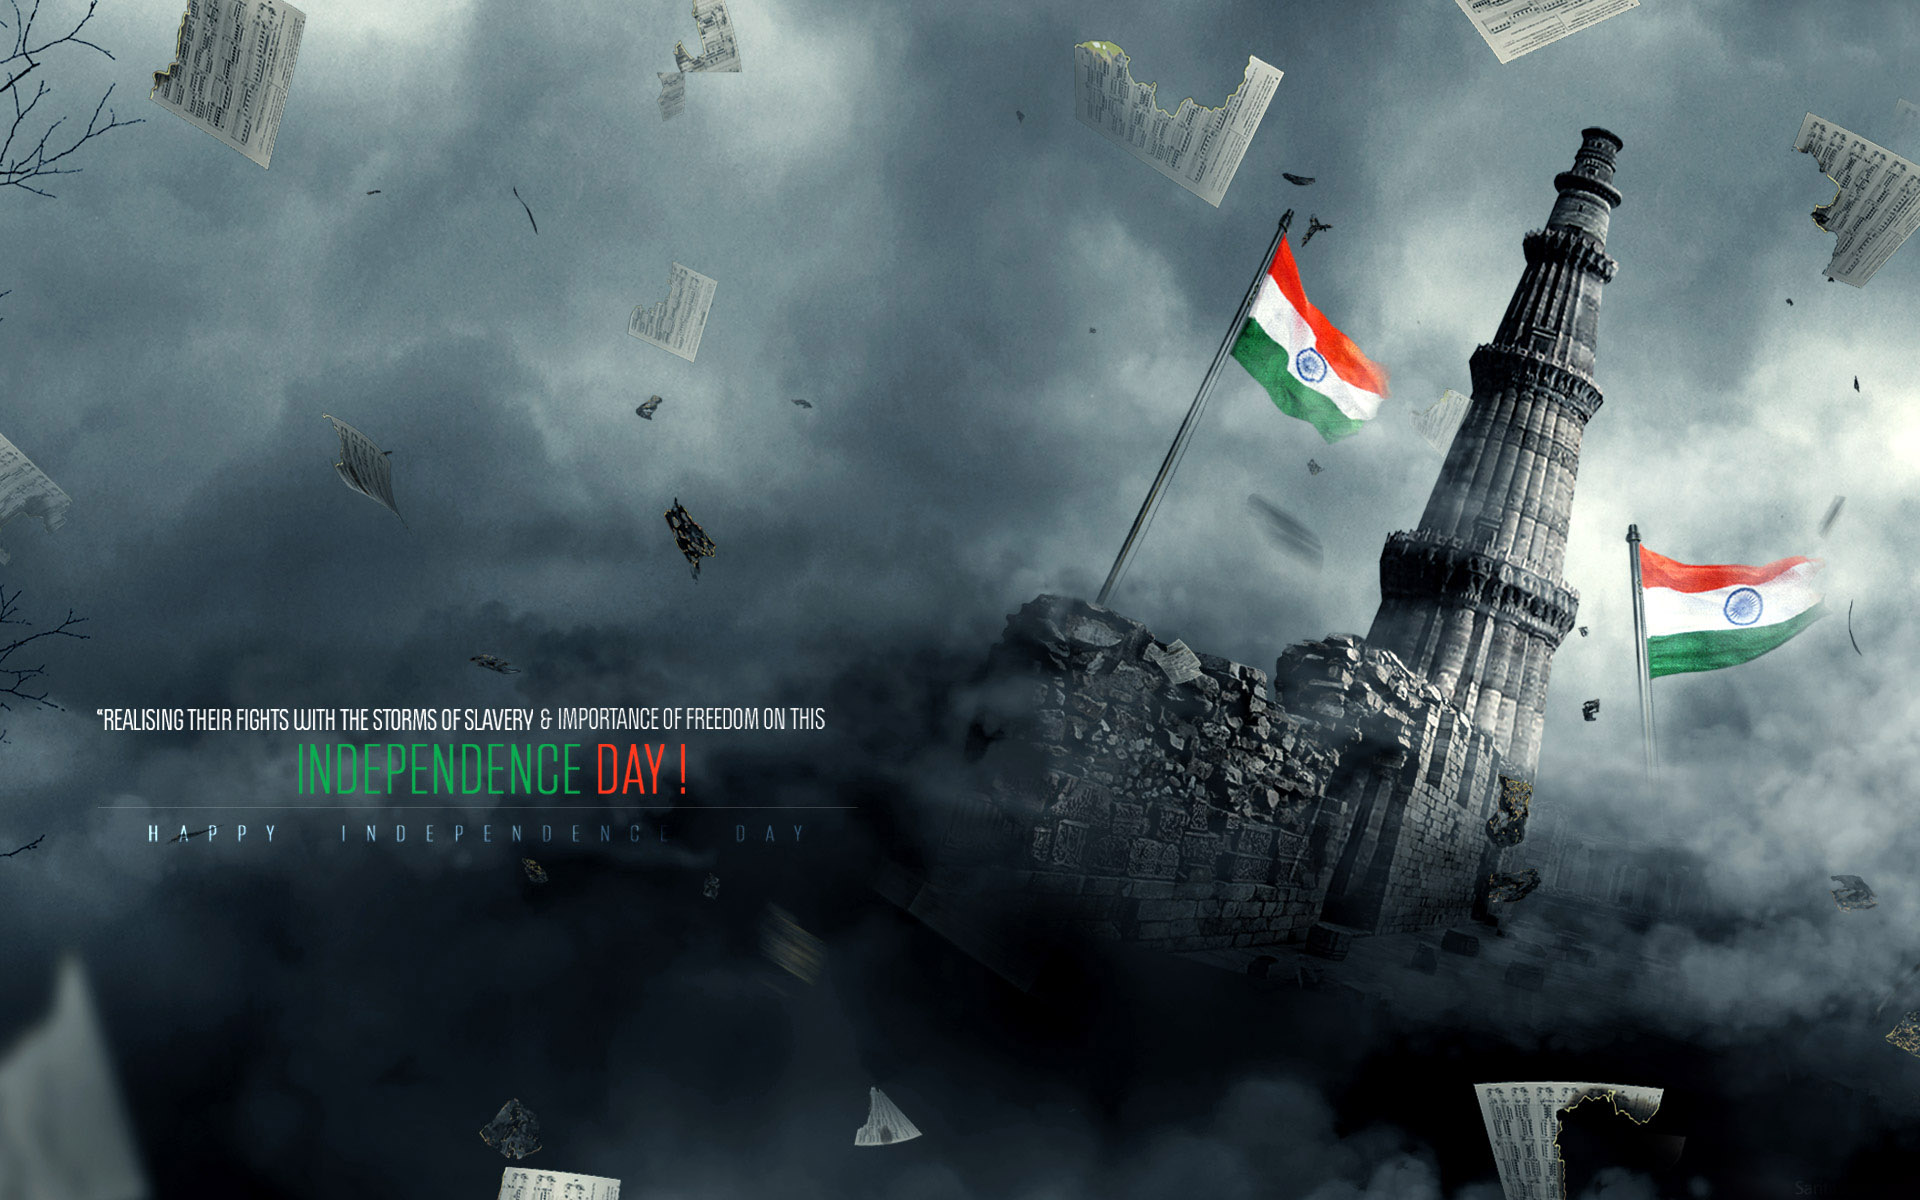 India Independence Day Wallpapers HD Pictures 15 August 1920x1200